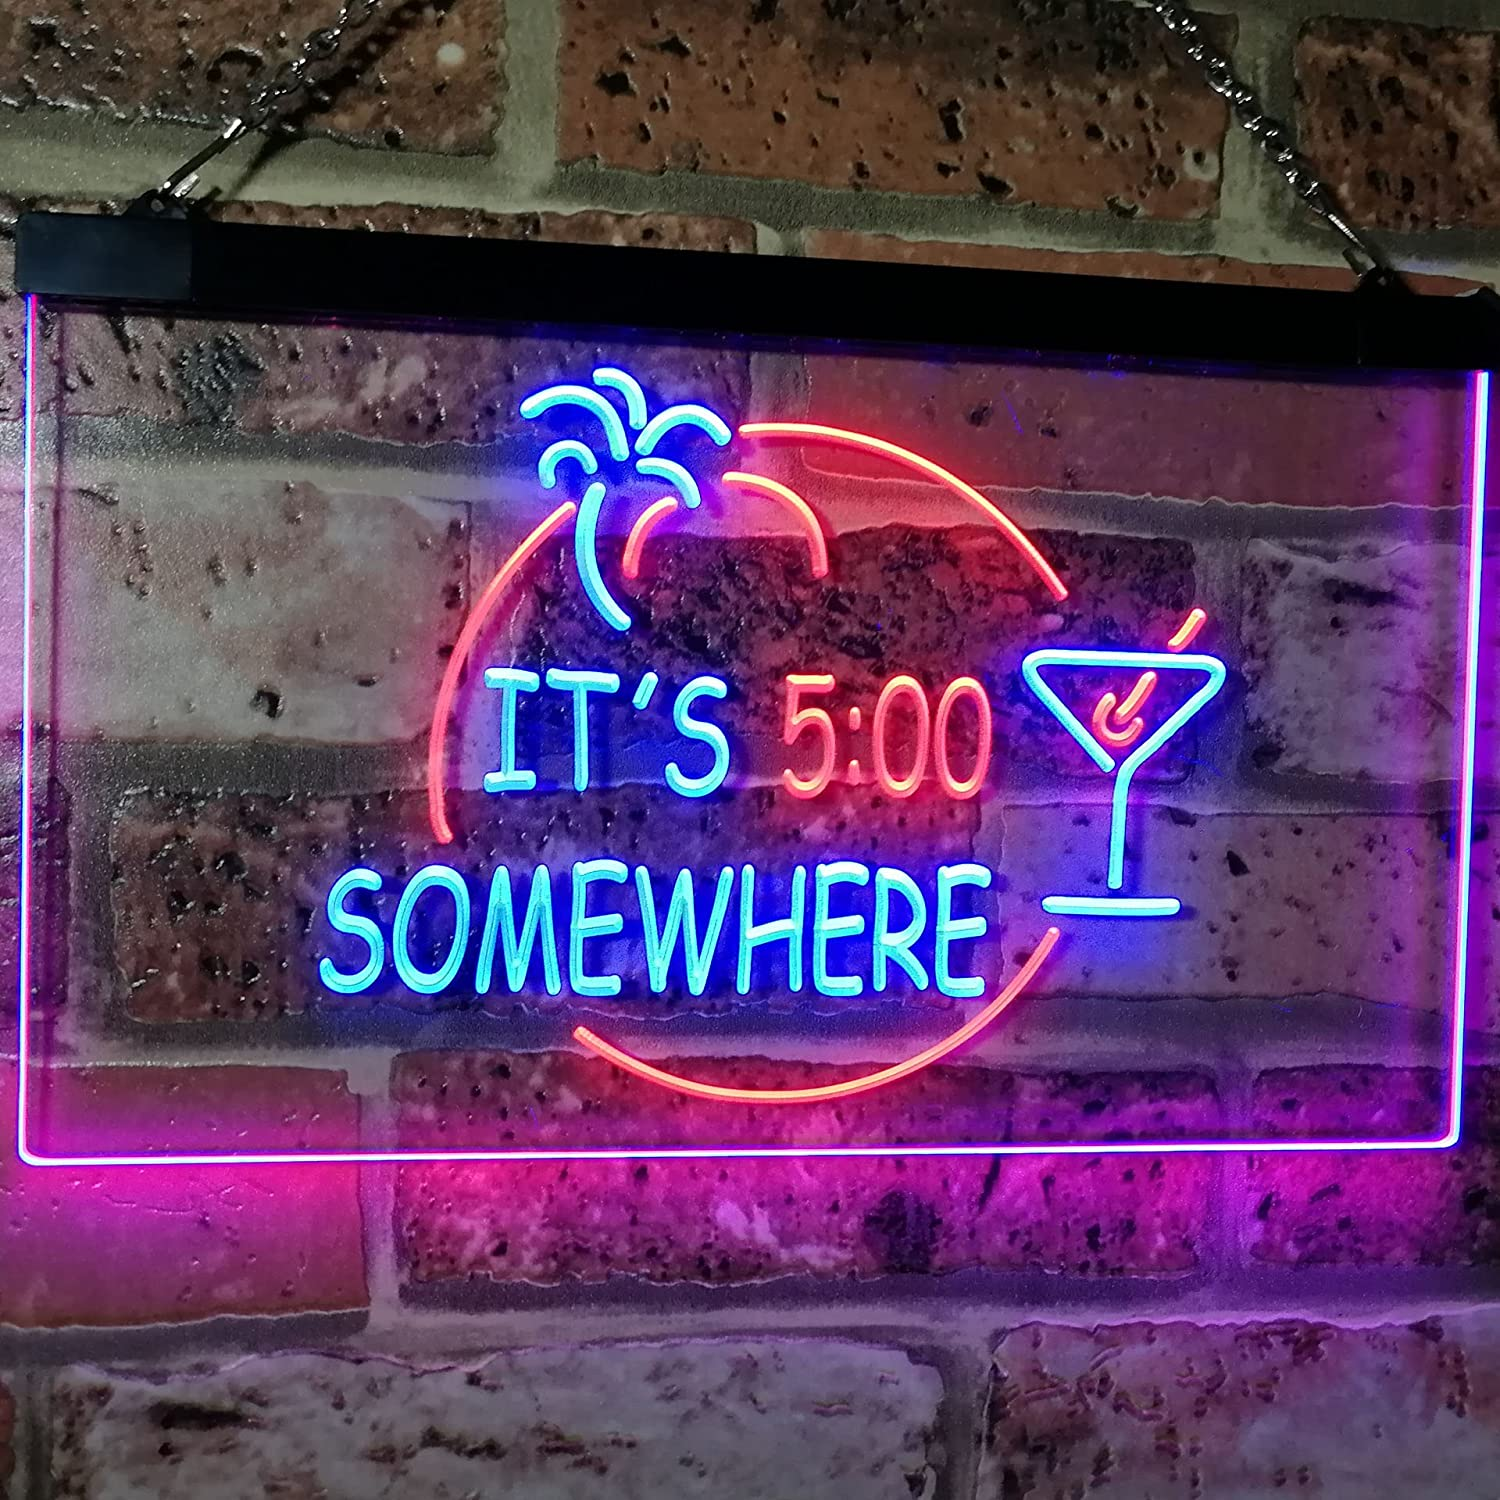 AdvpPro 2C It's 5 pm Somewhere Bar Beer Cocktails Dual Color LED Neon Sign Red & Yellow 300mm x 210mm st6s32-i2090-ry ADVPRO